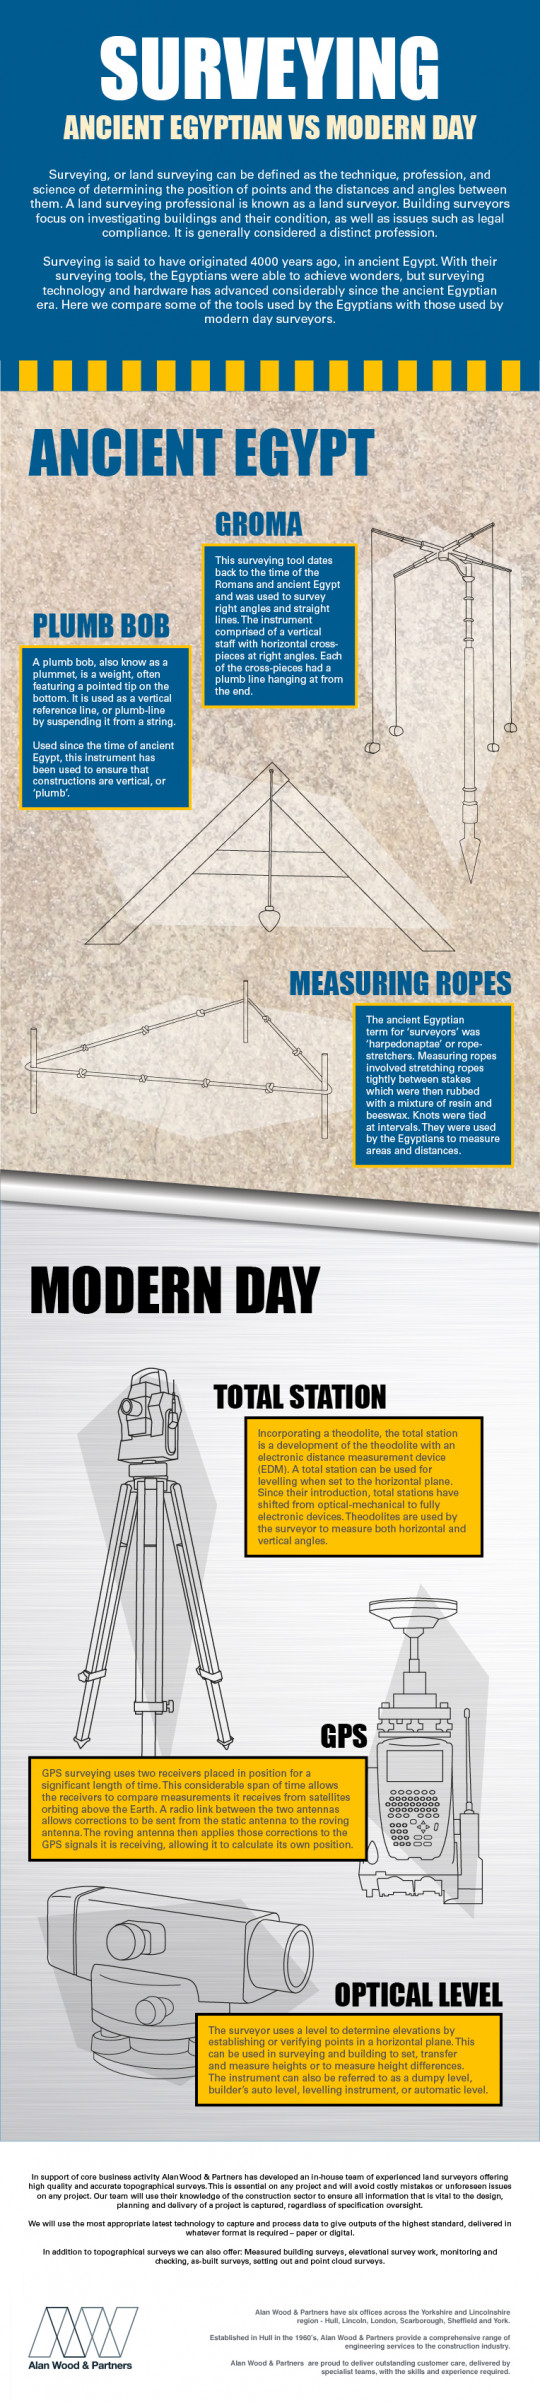 Surveying: Ancient Egyptian VS Modern Day